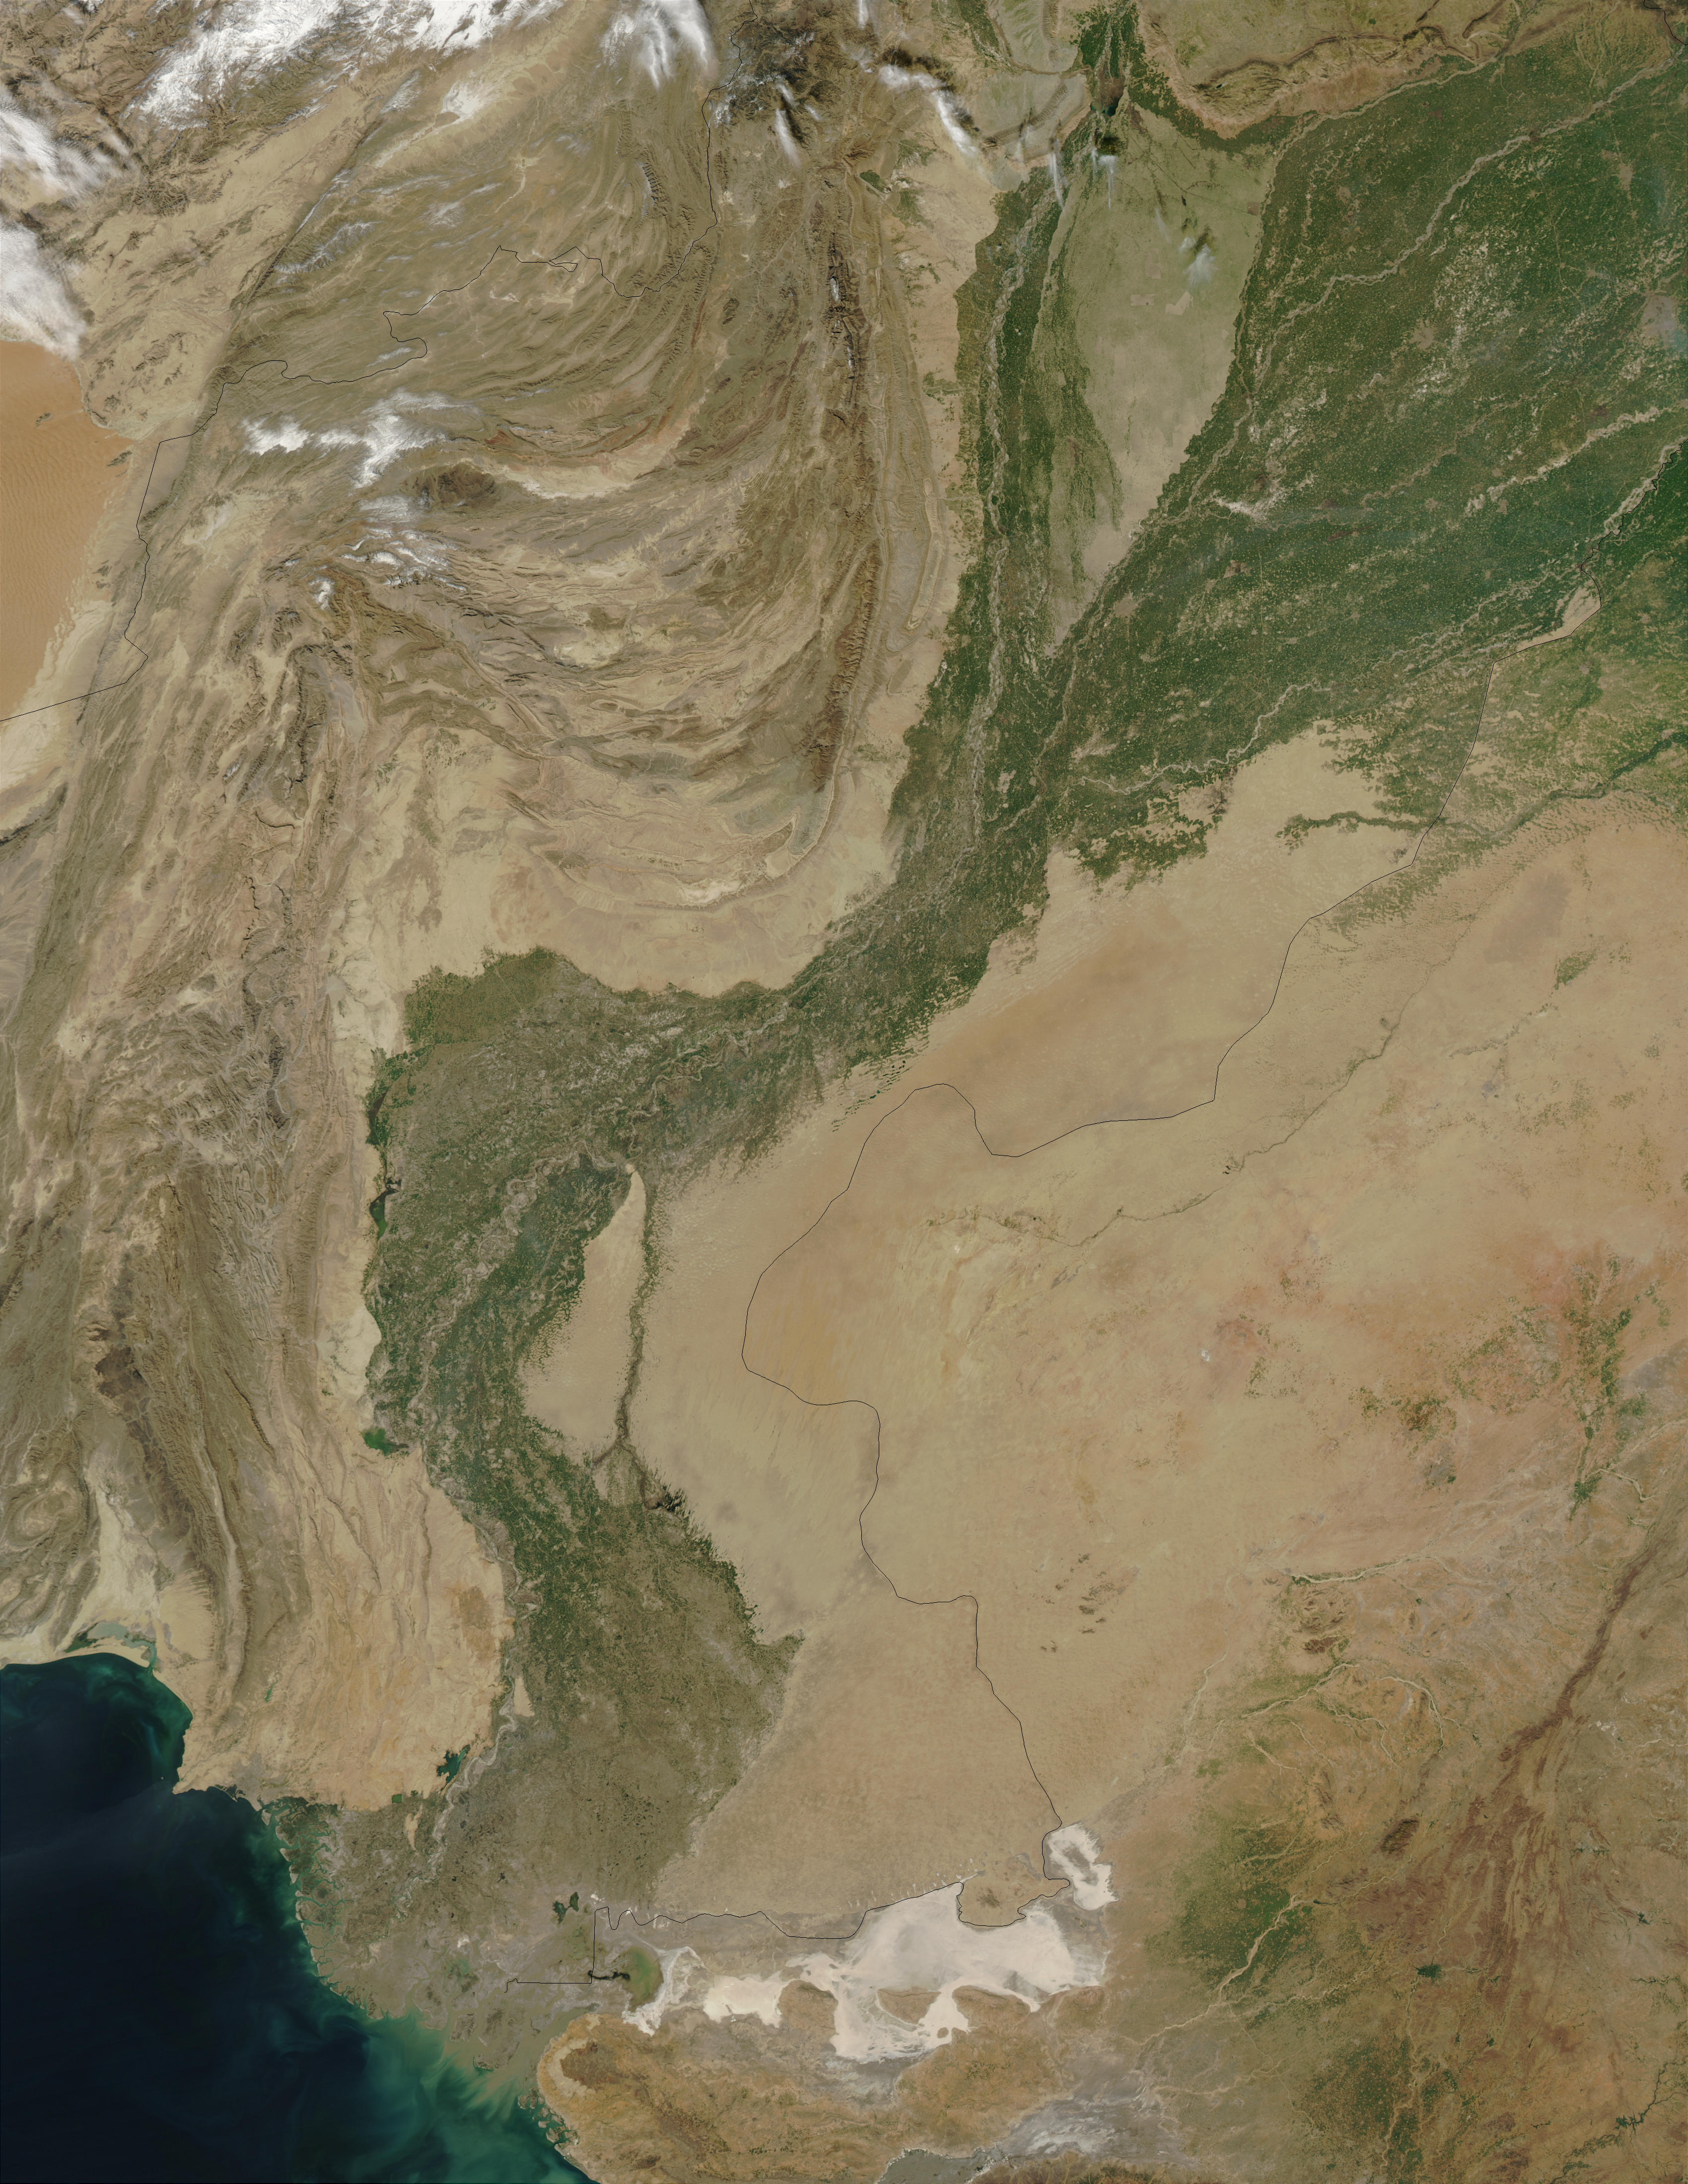 The Indus River Valley, Pakistan